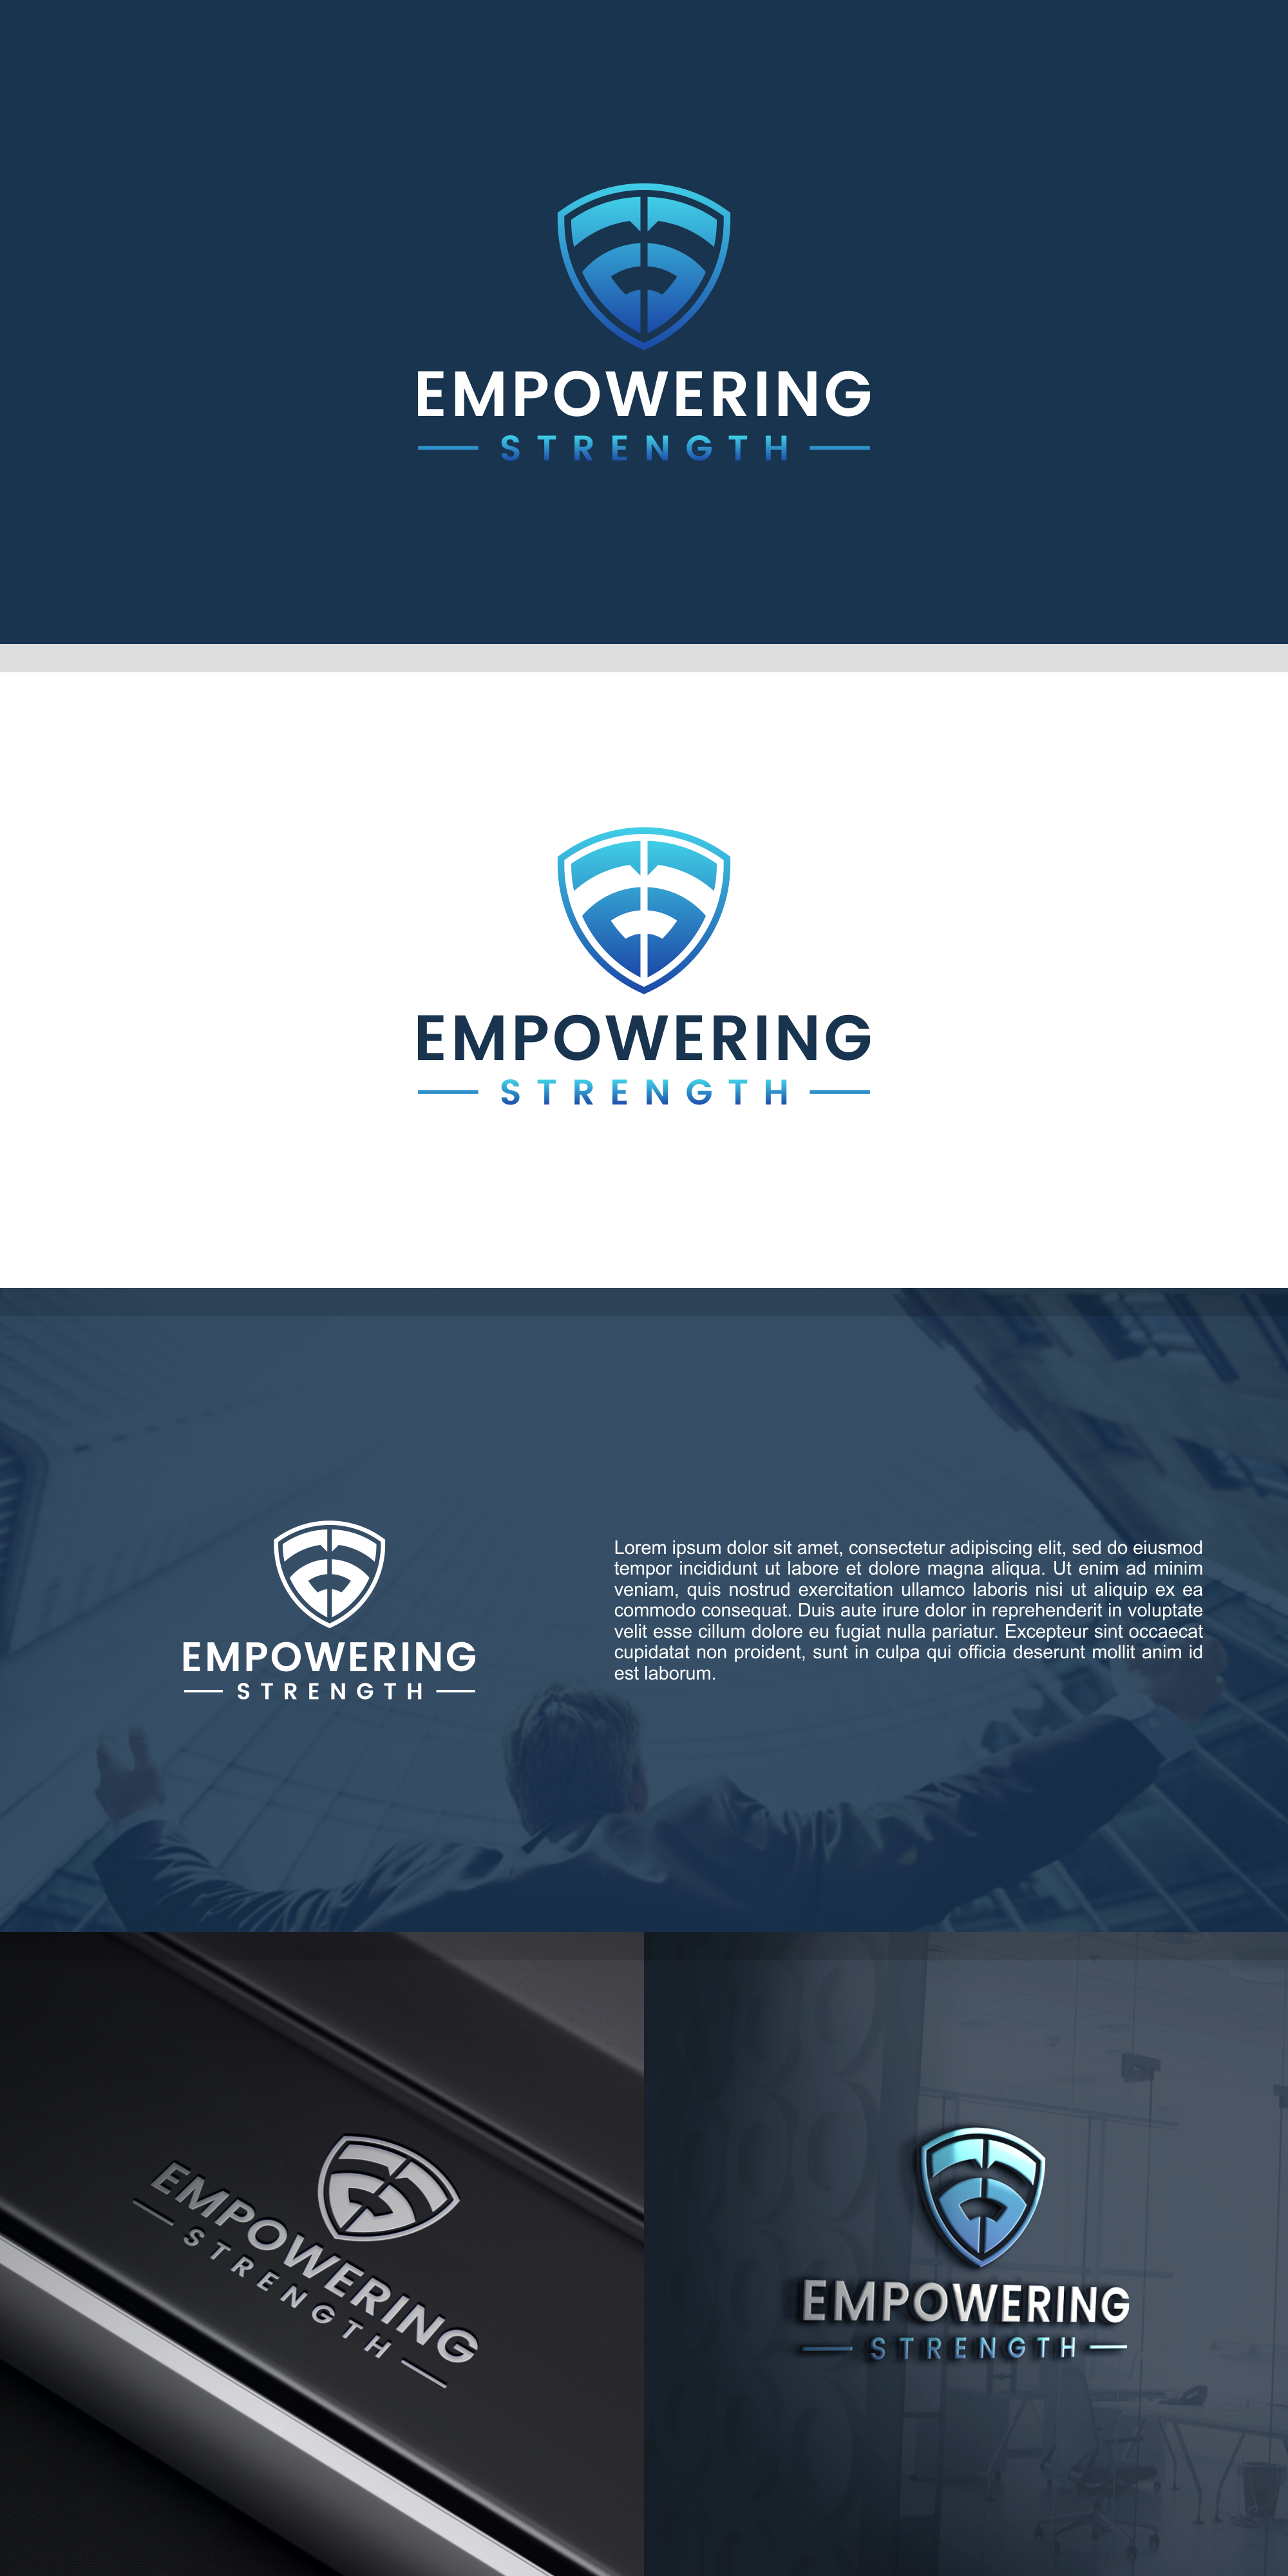 Empowering logo needed to assist others in finding their true strength